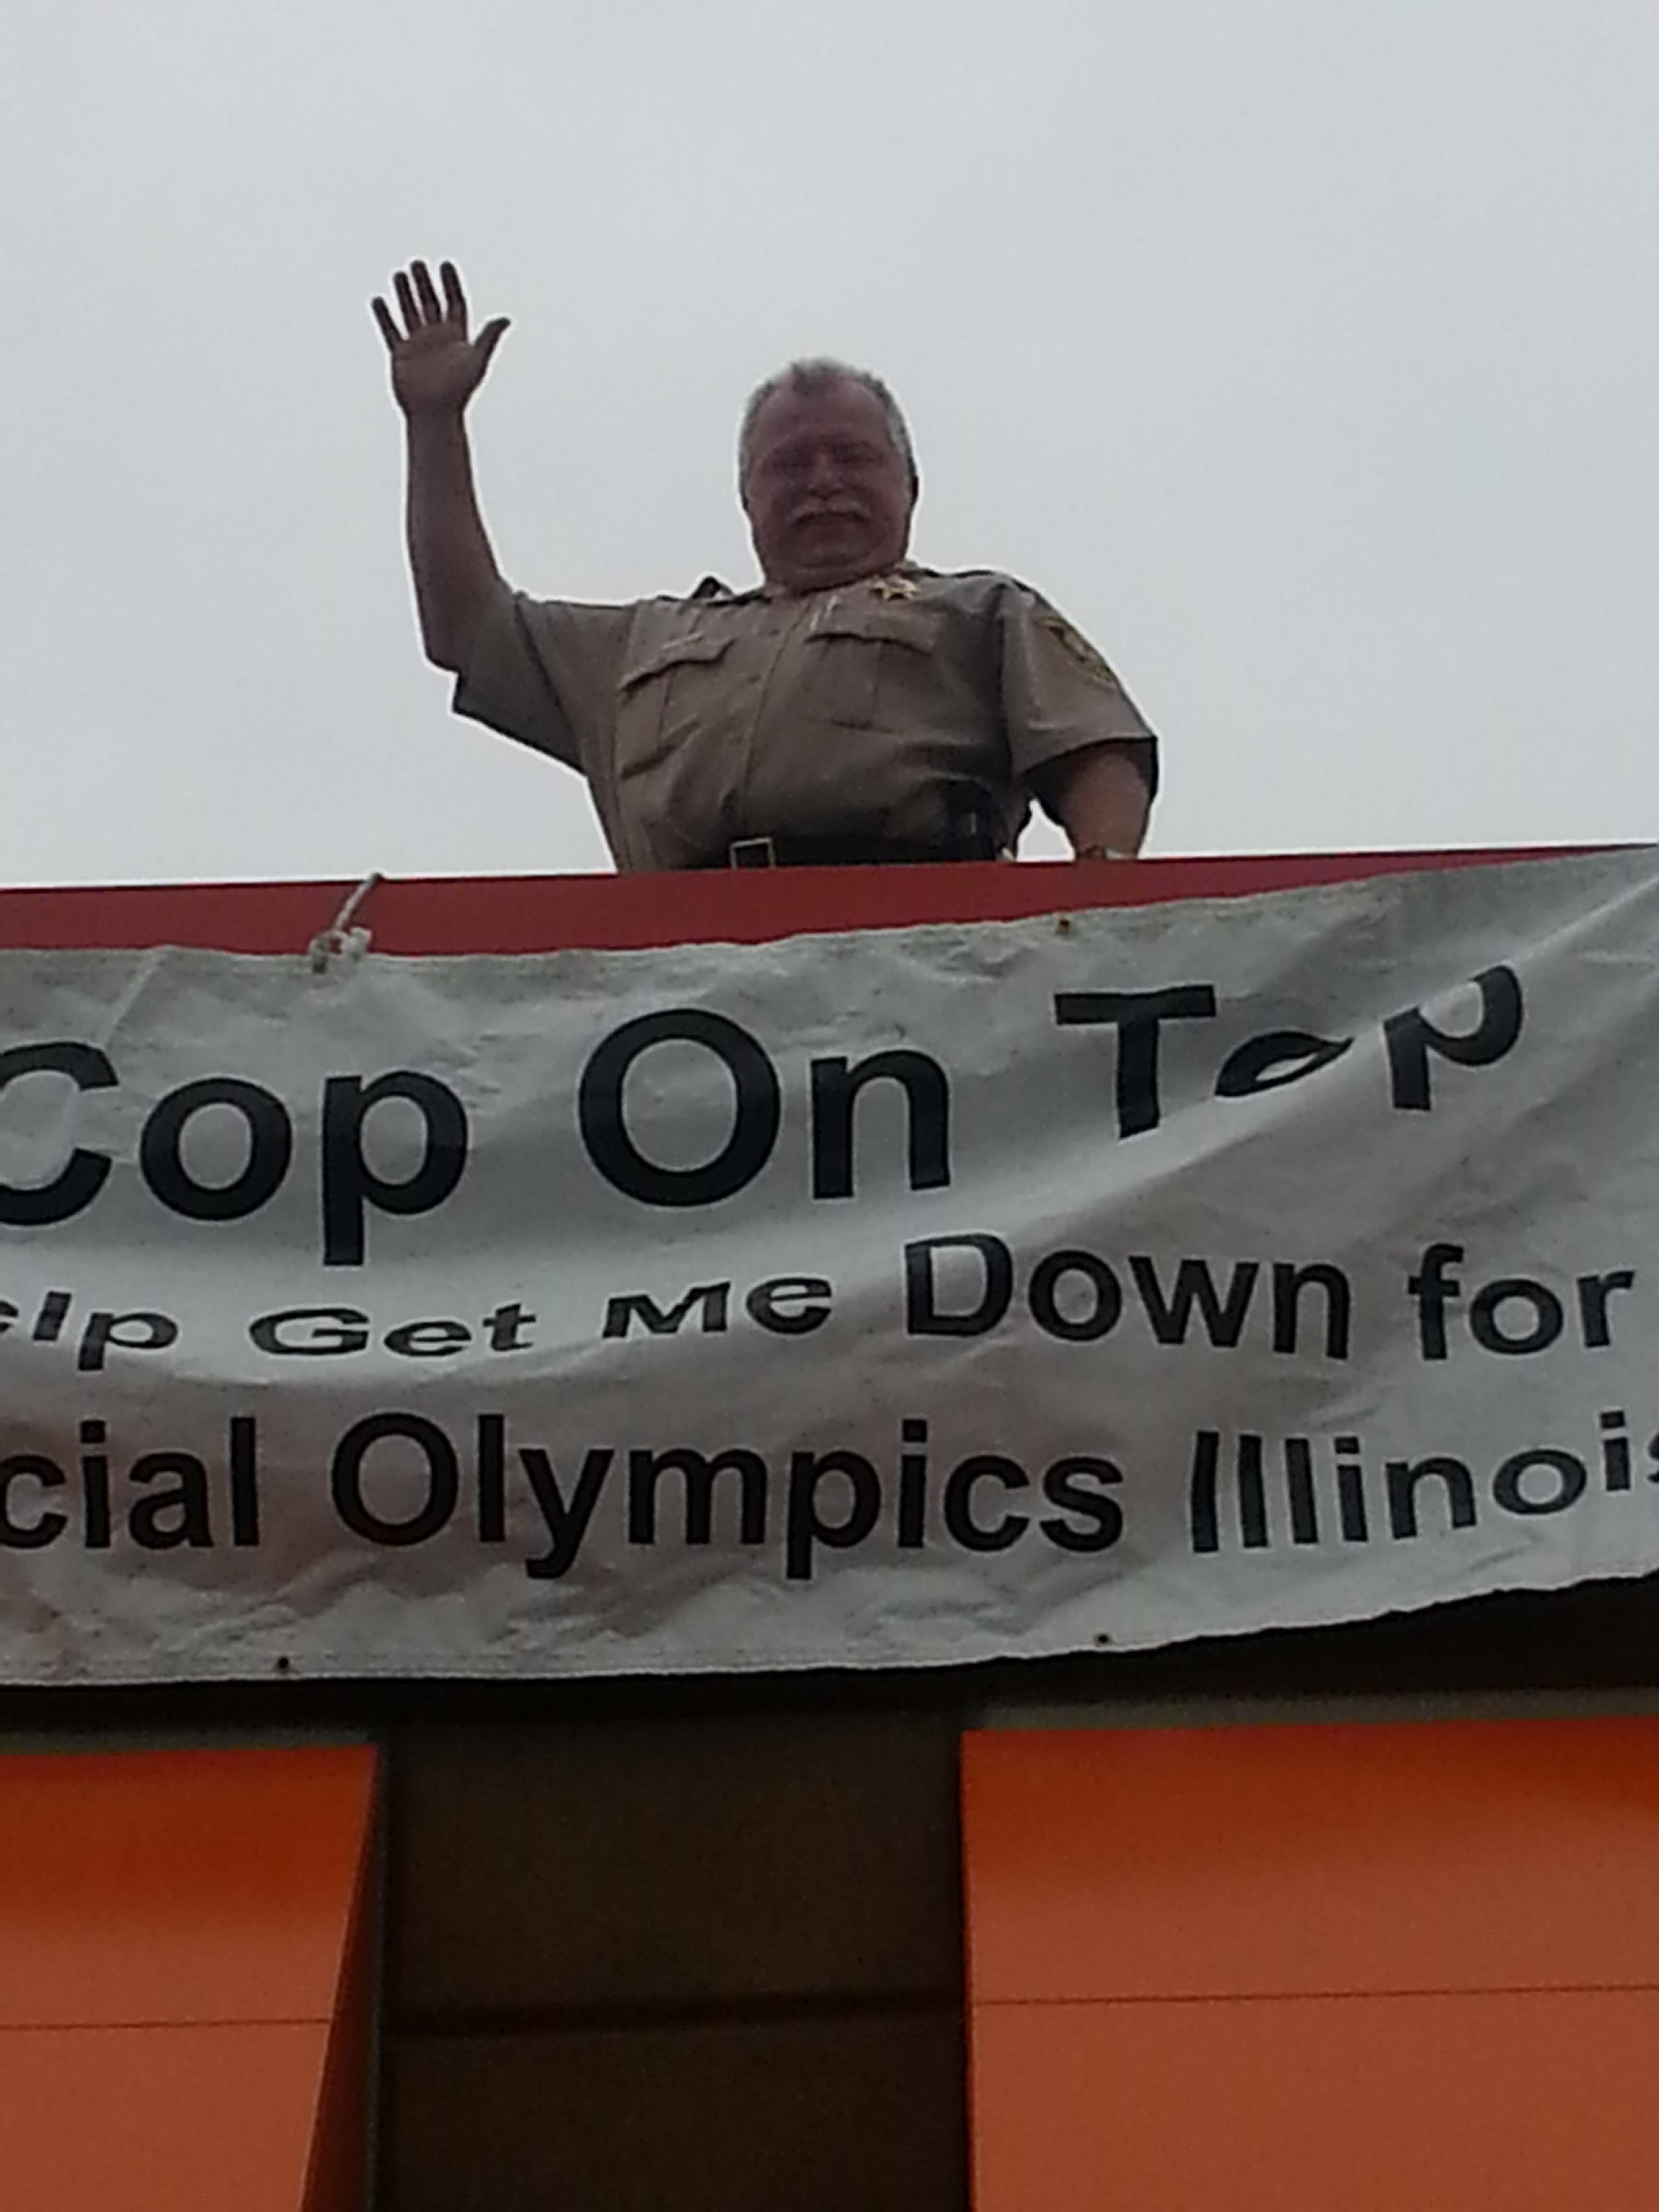 COP ON TOP